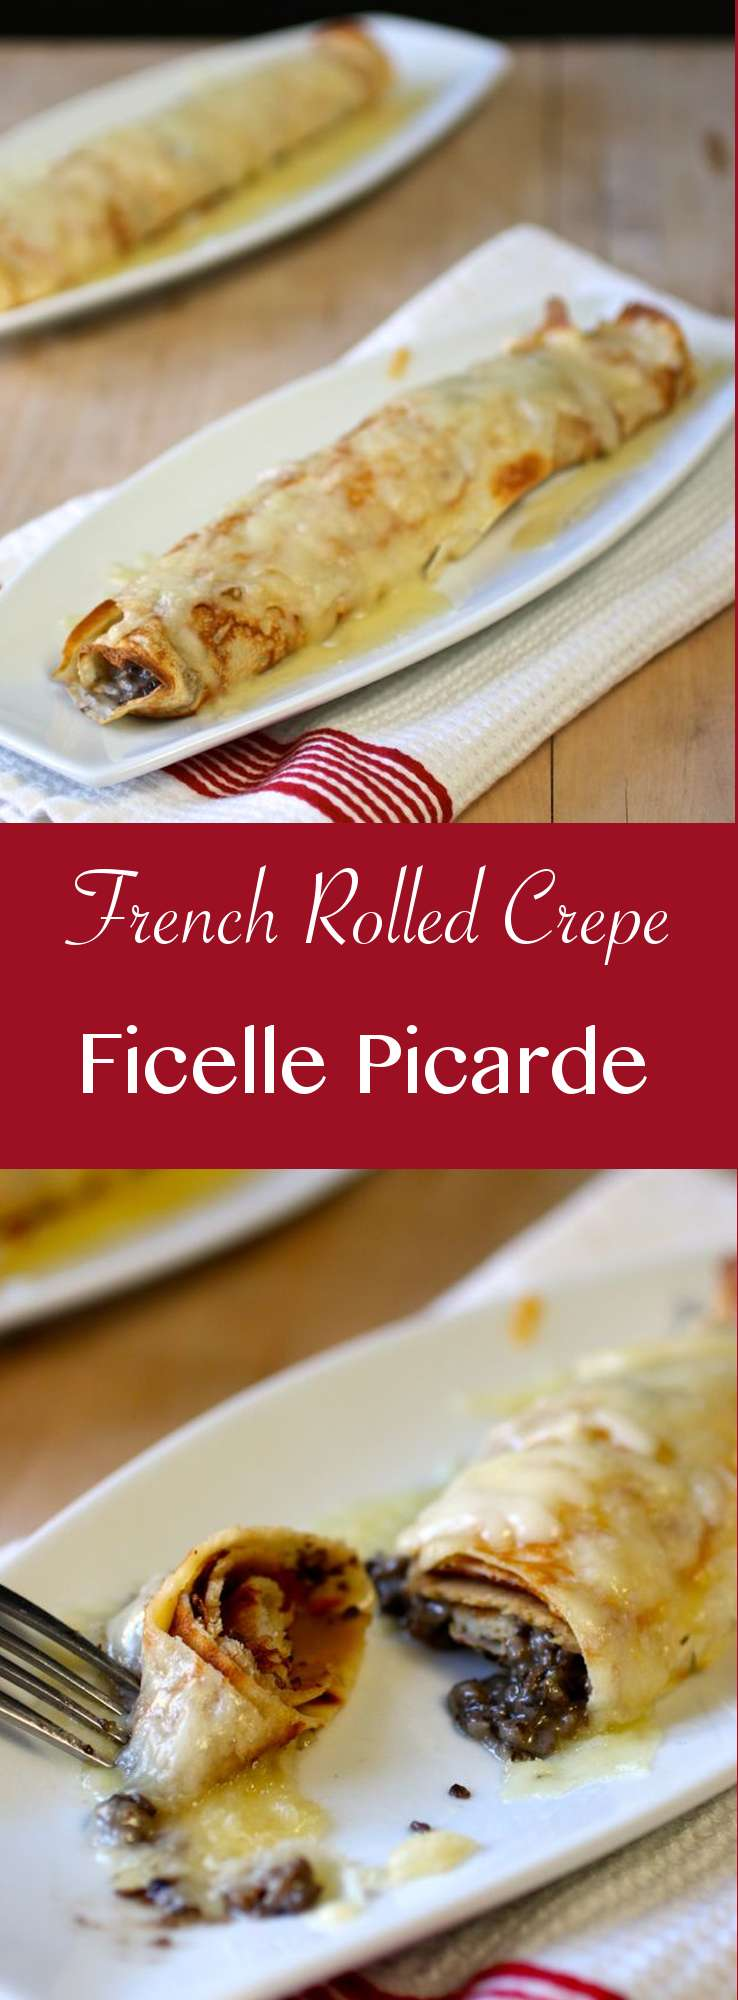 Discover the recipe of traditional ficelle picarde, a mushroom and creme fraiche filled crepe au gratin from the north of France.